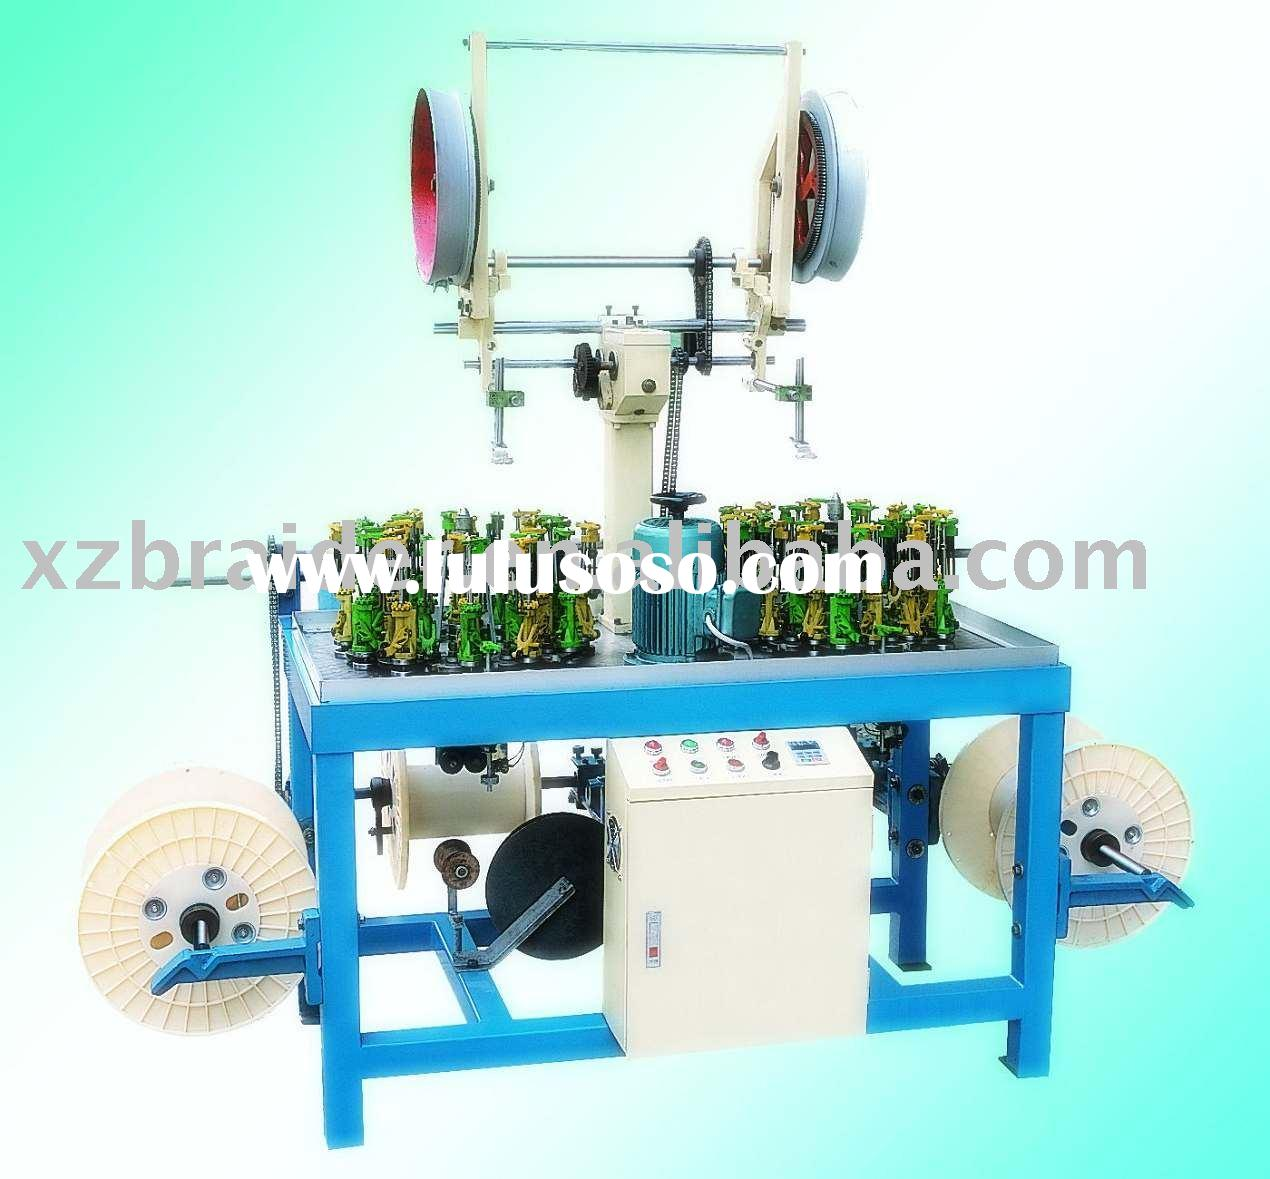 wire and cable braiding machine